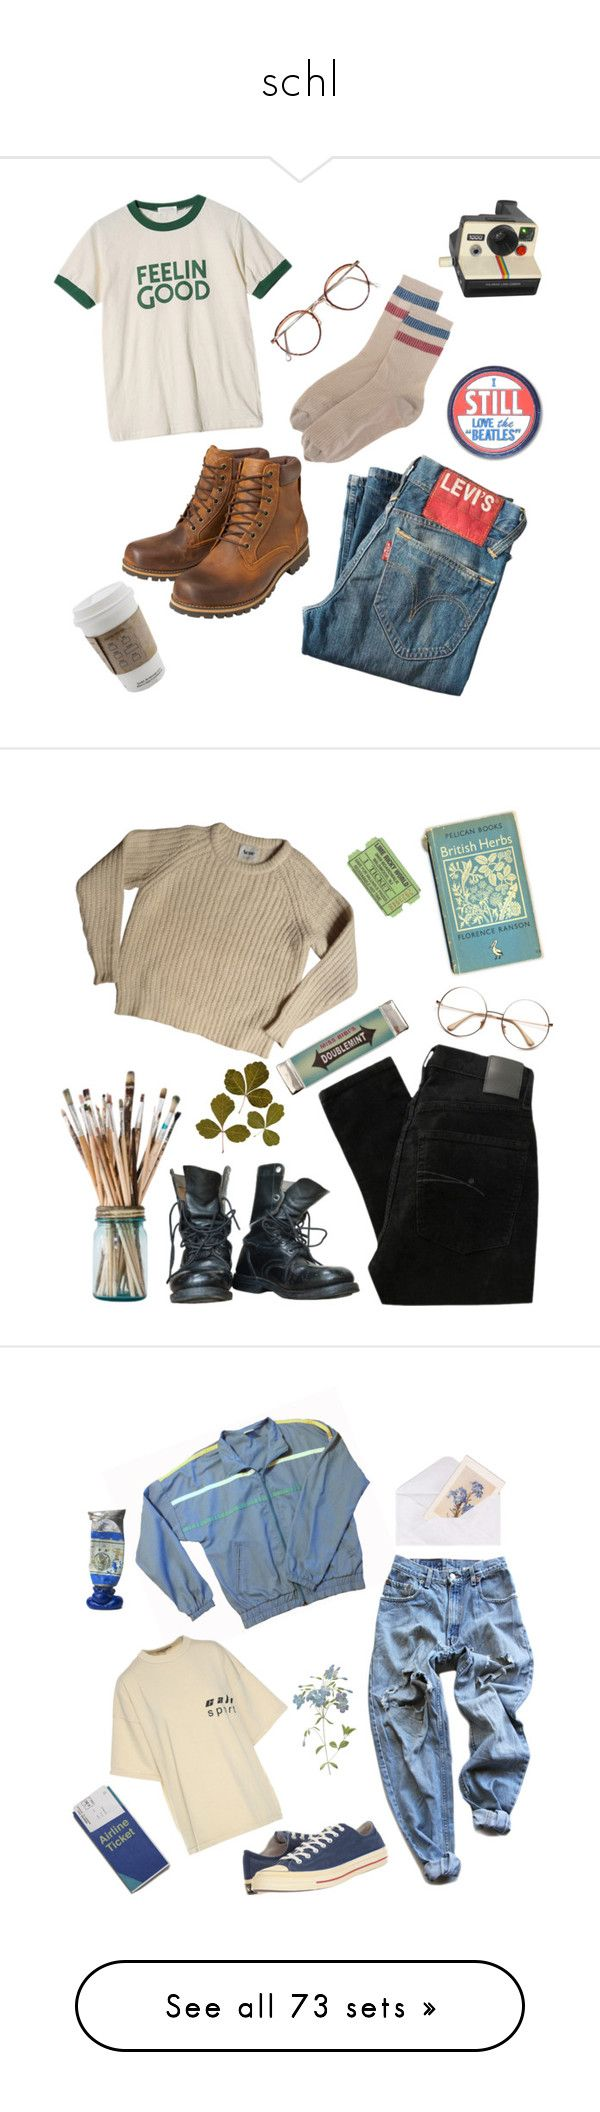 """""""schl"""" by hachibee ❤ liked on Polyvore featuring Nobody Denim, Acne Studios, Miss Bibi, Levi's, Yeezy by Kanye West, Converse, Boohoo, Forever 21, Krochet Kids and MANGO"""